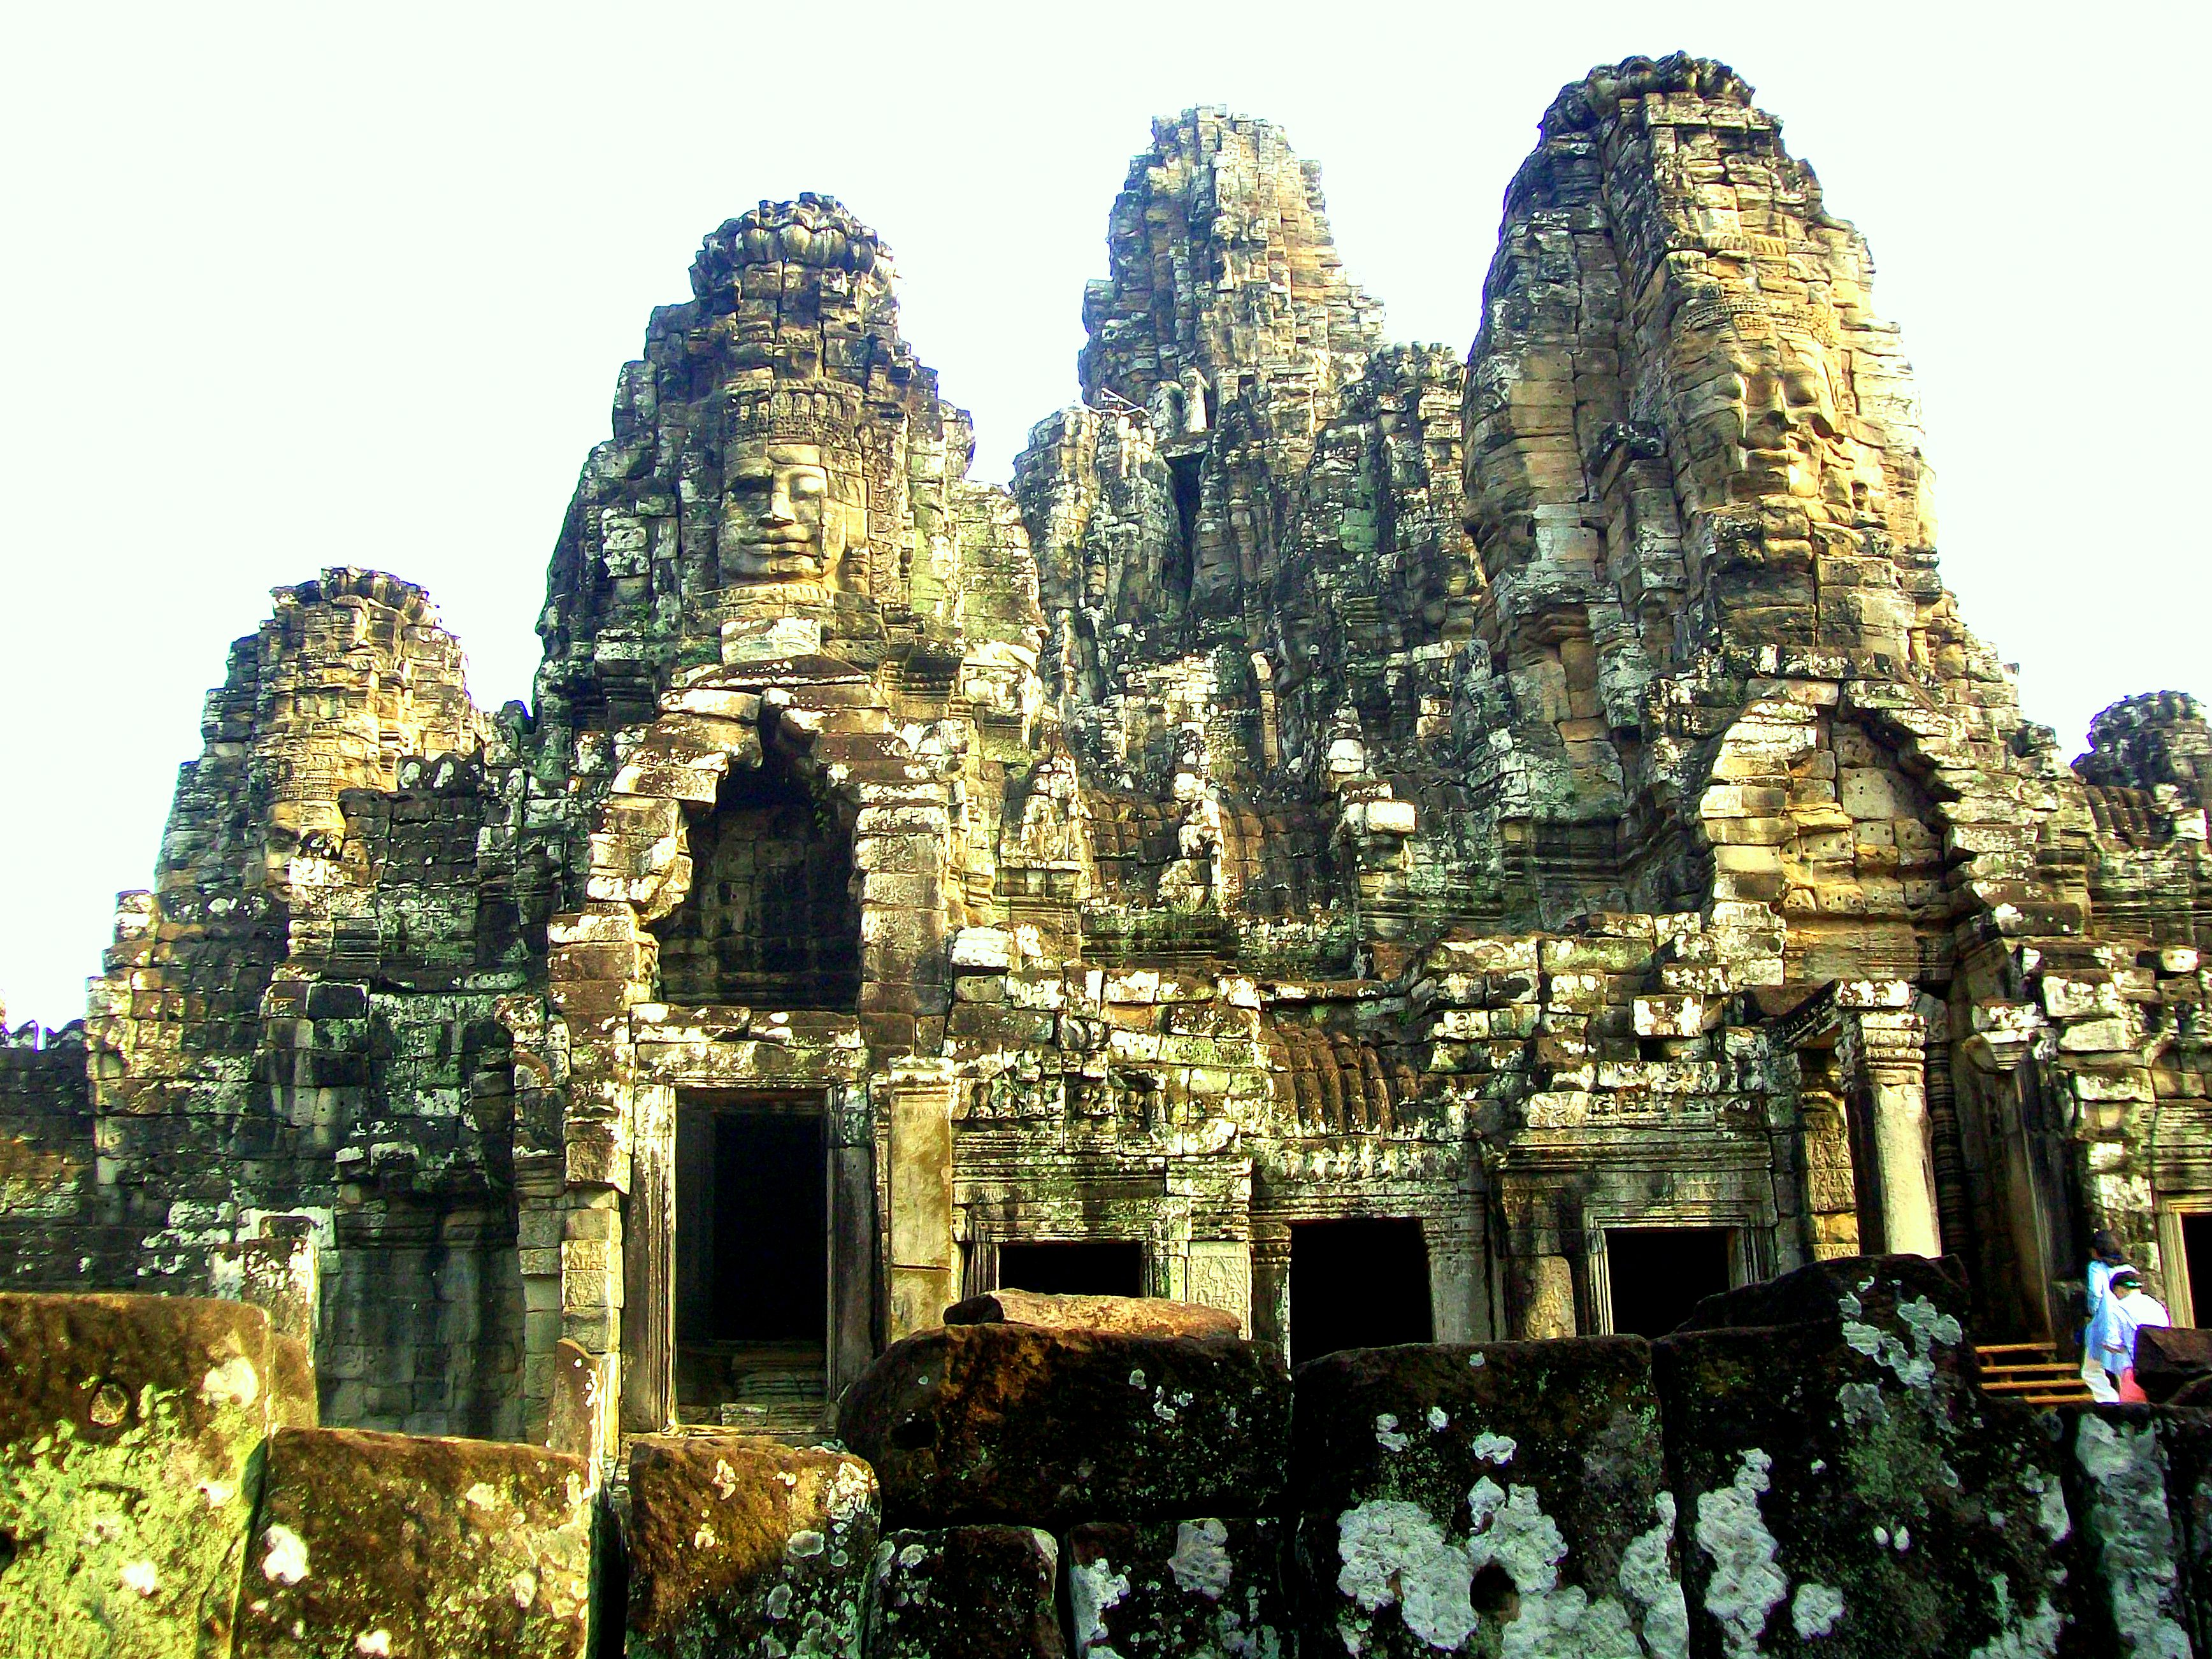 Angkor Thom - Bayon Temple Complex (See faces on the top of the Towers - Cambodia